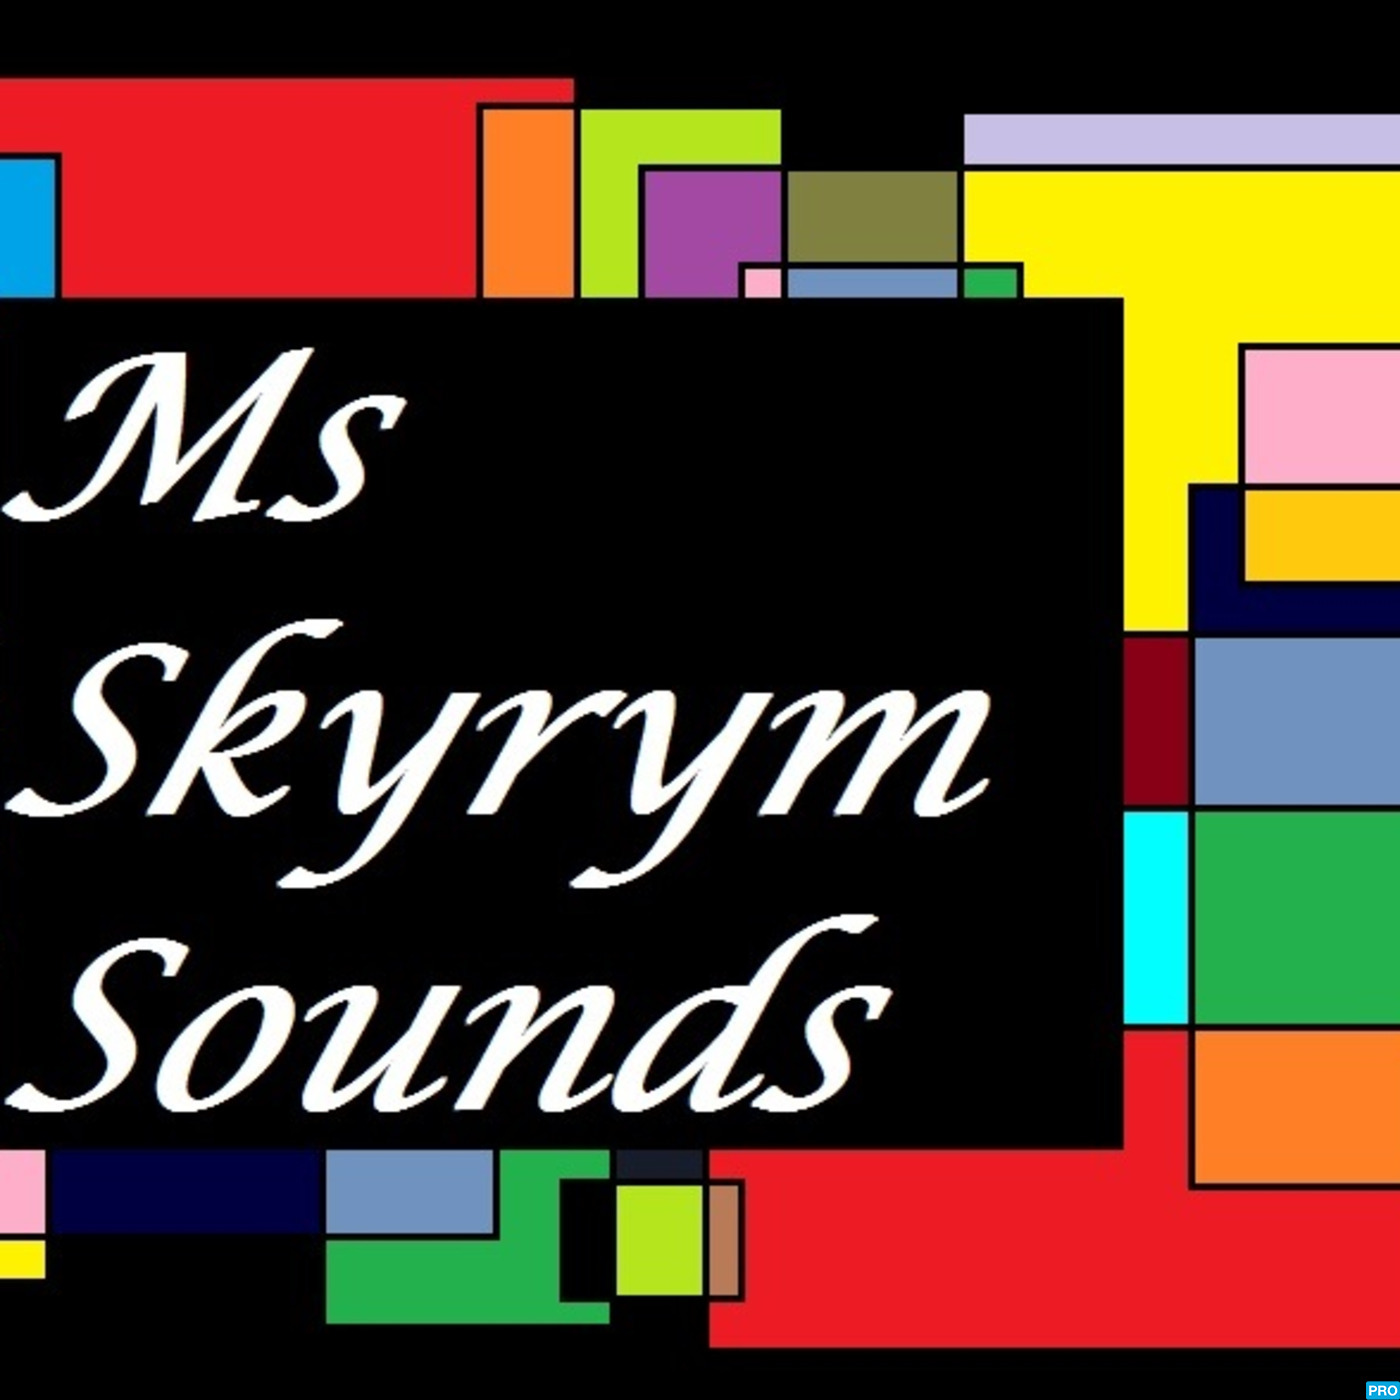 Ms Skyrym Sounds